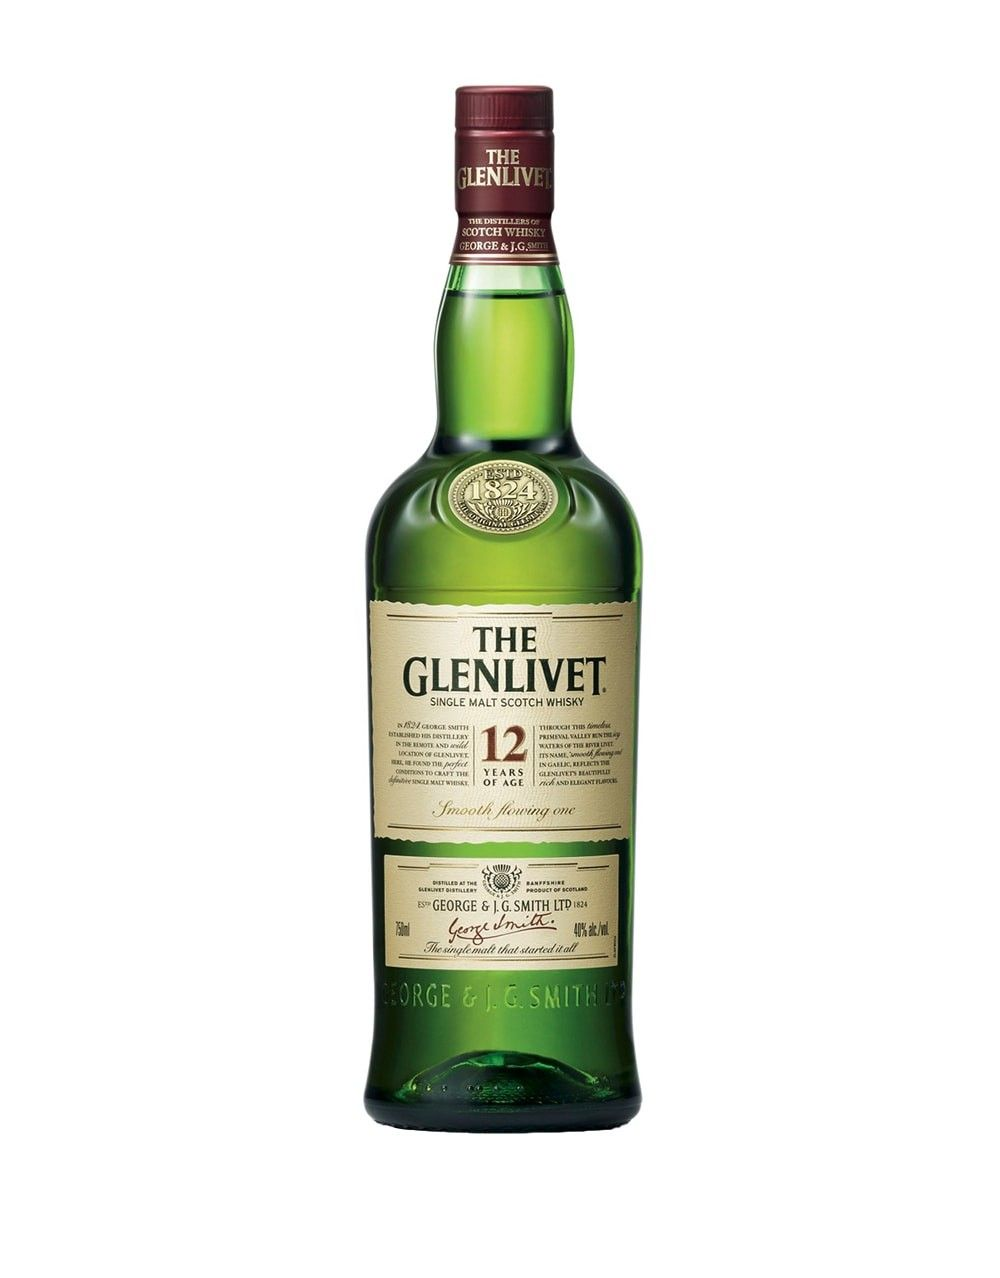 the glenlivet 12 year old scotch whisky